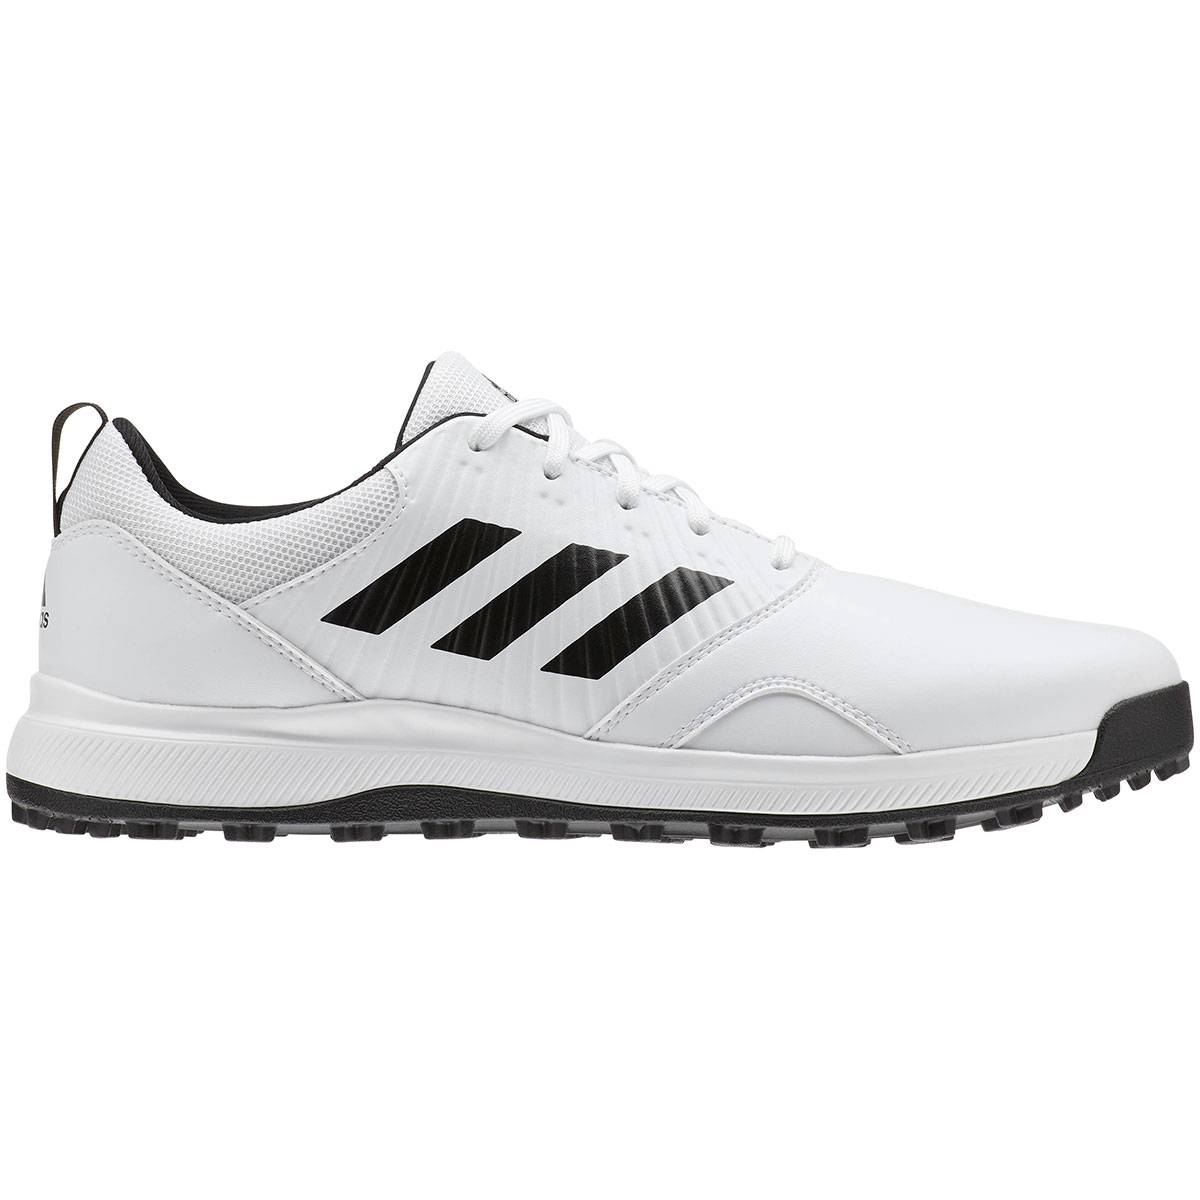 Adidas Men's CP Traxion Spikeless White Golf Shoe